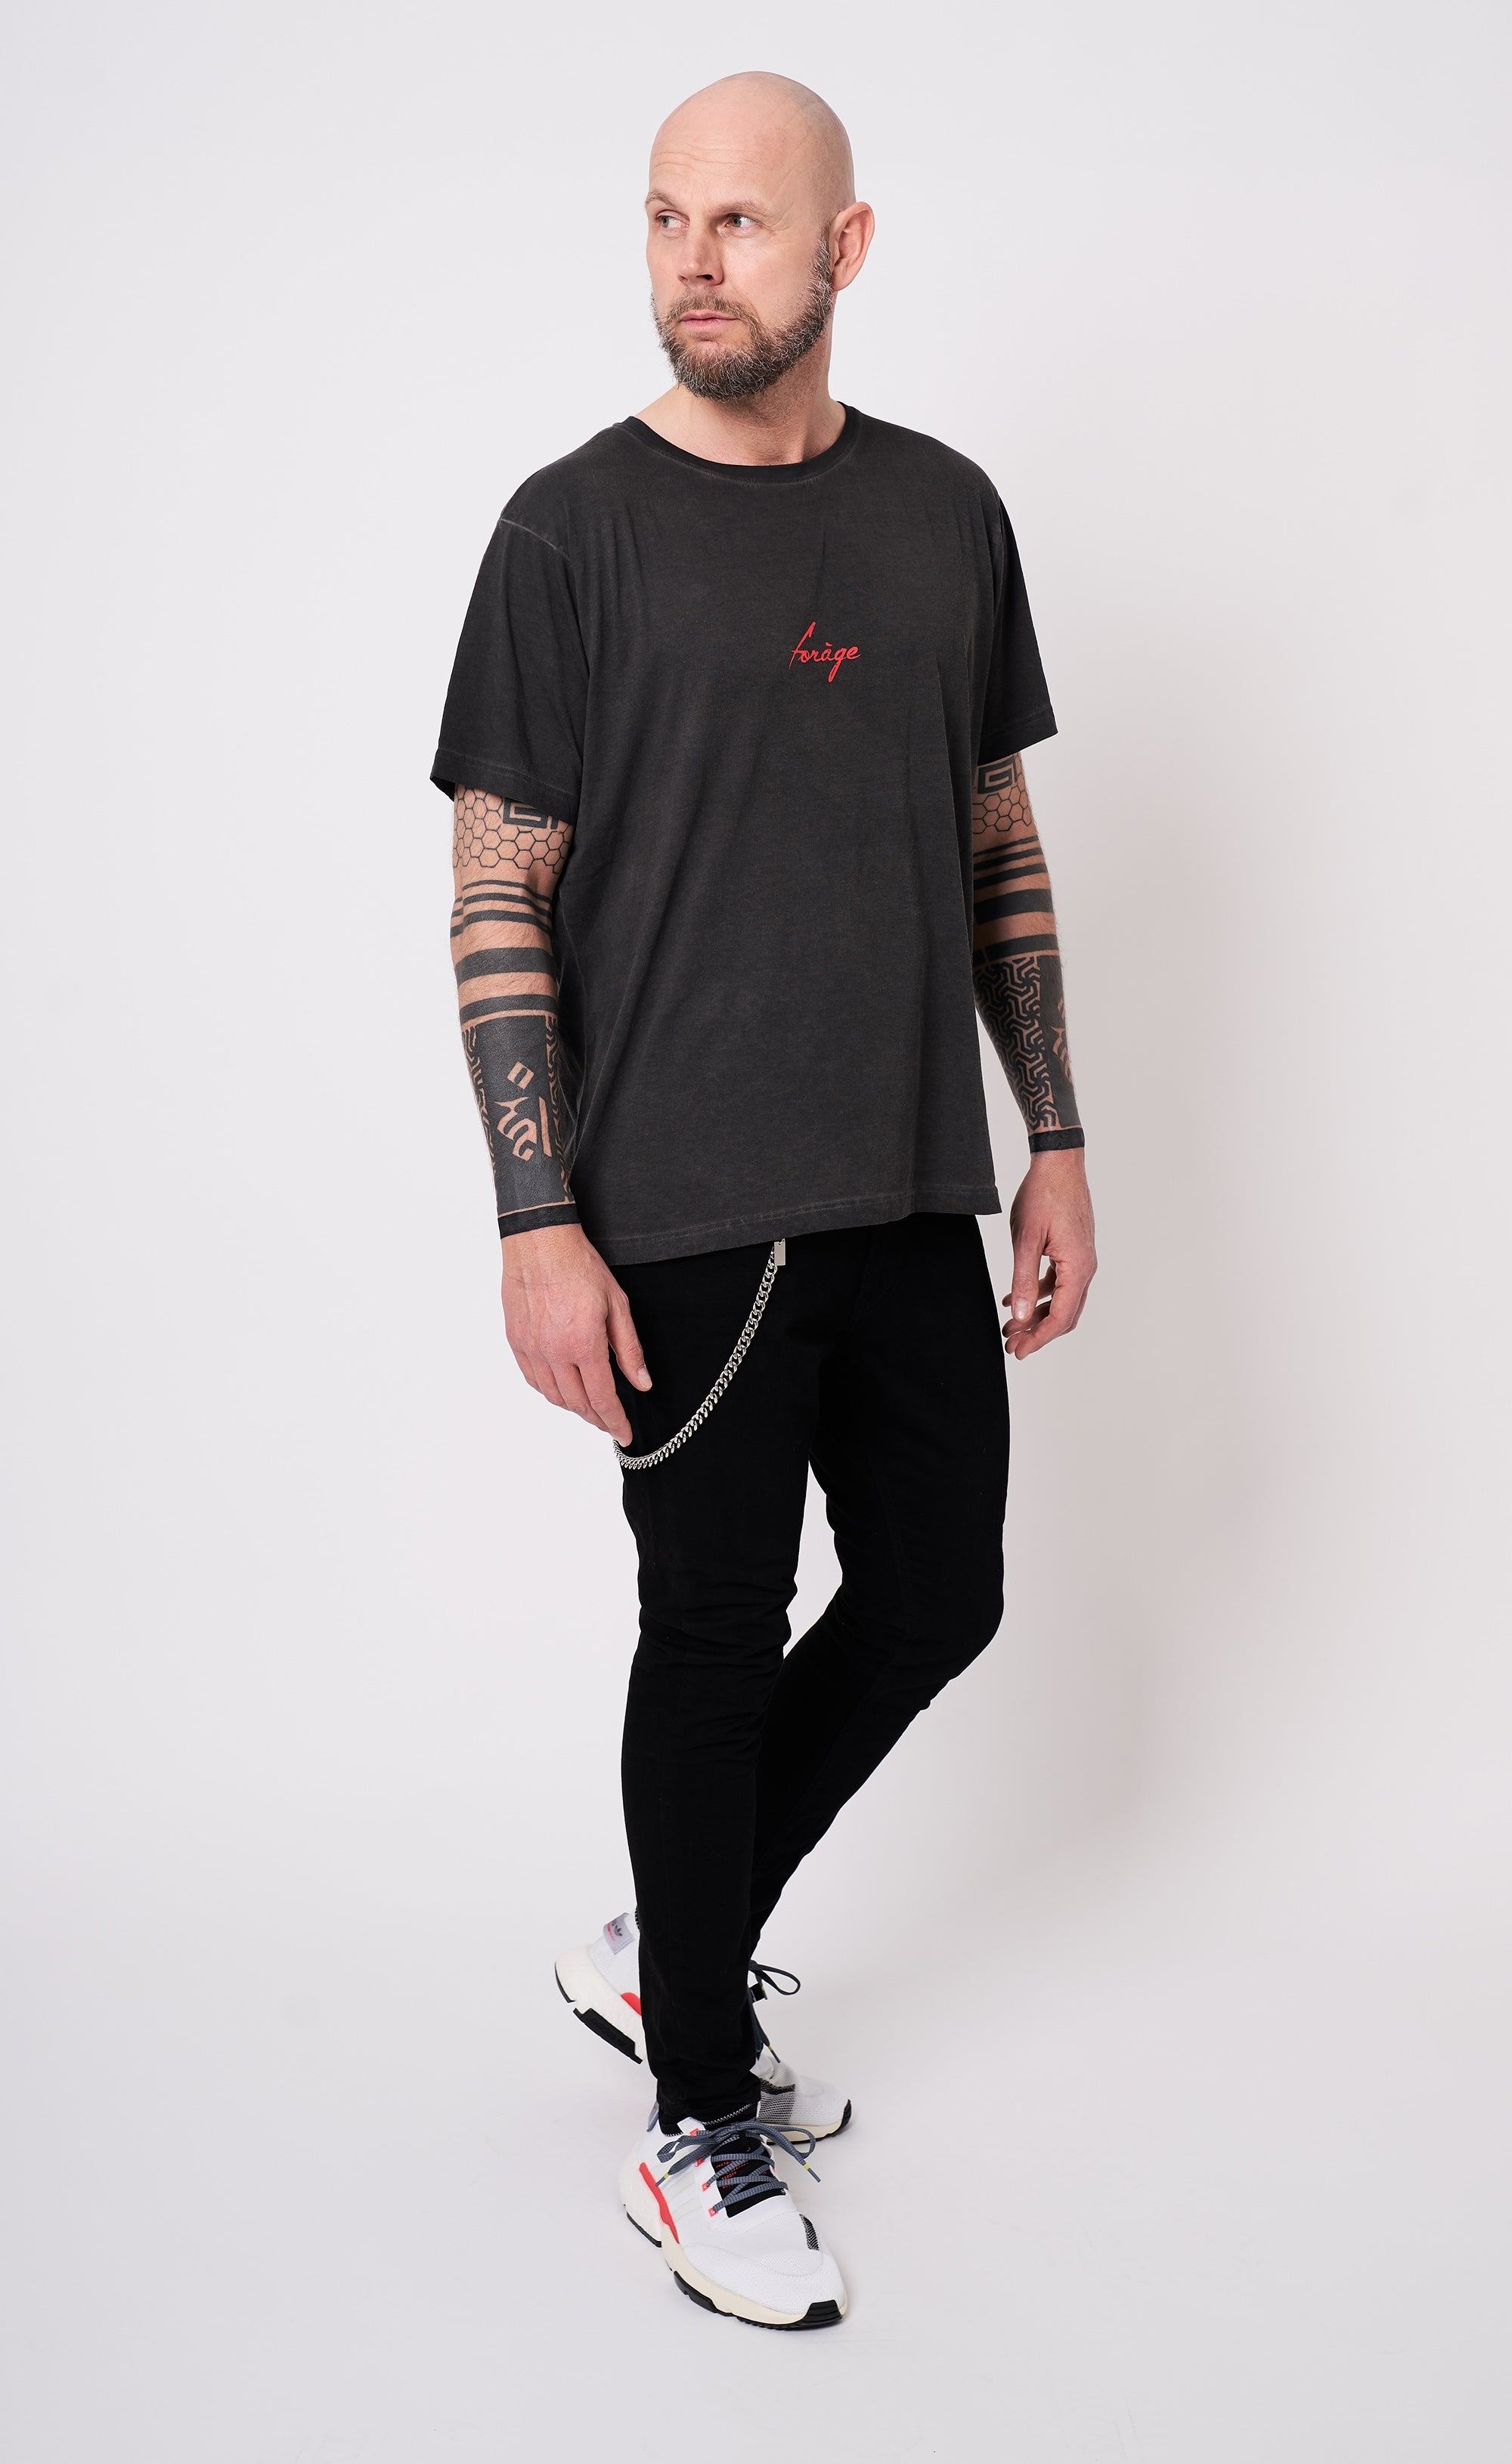 FORAGE LOGO SHIRT - MINIMAL - Forage-Clothing